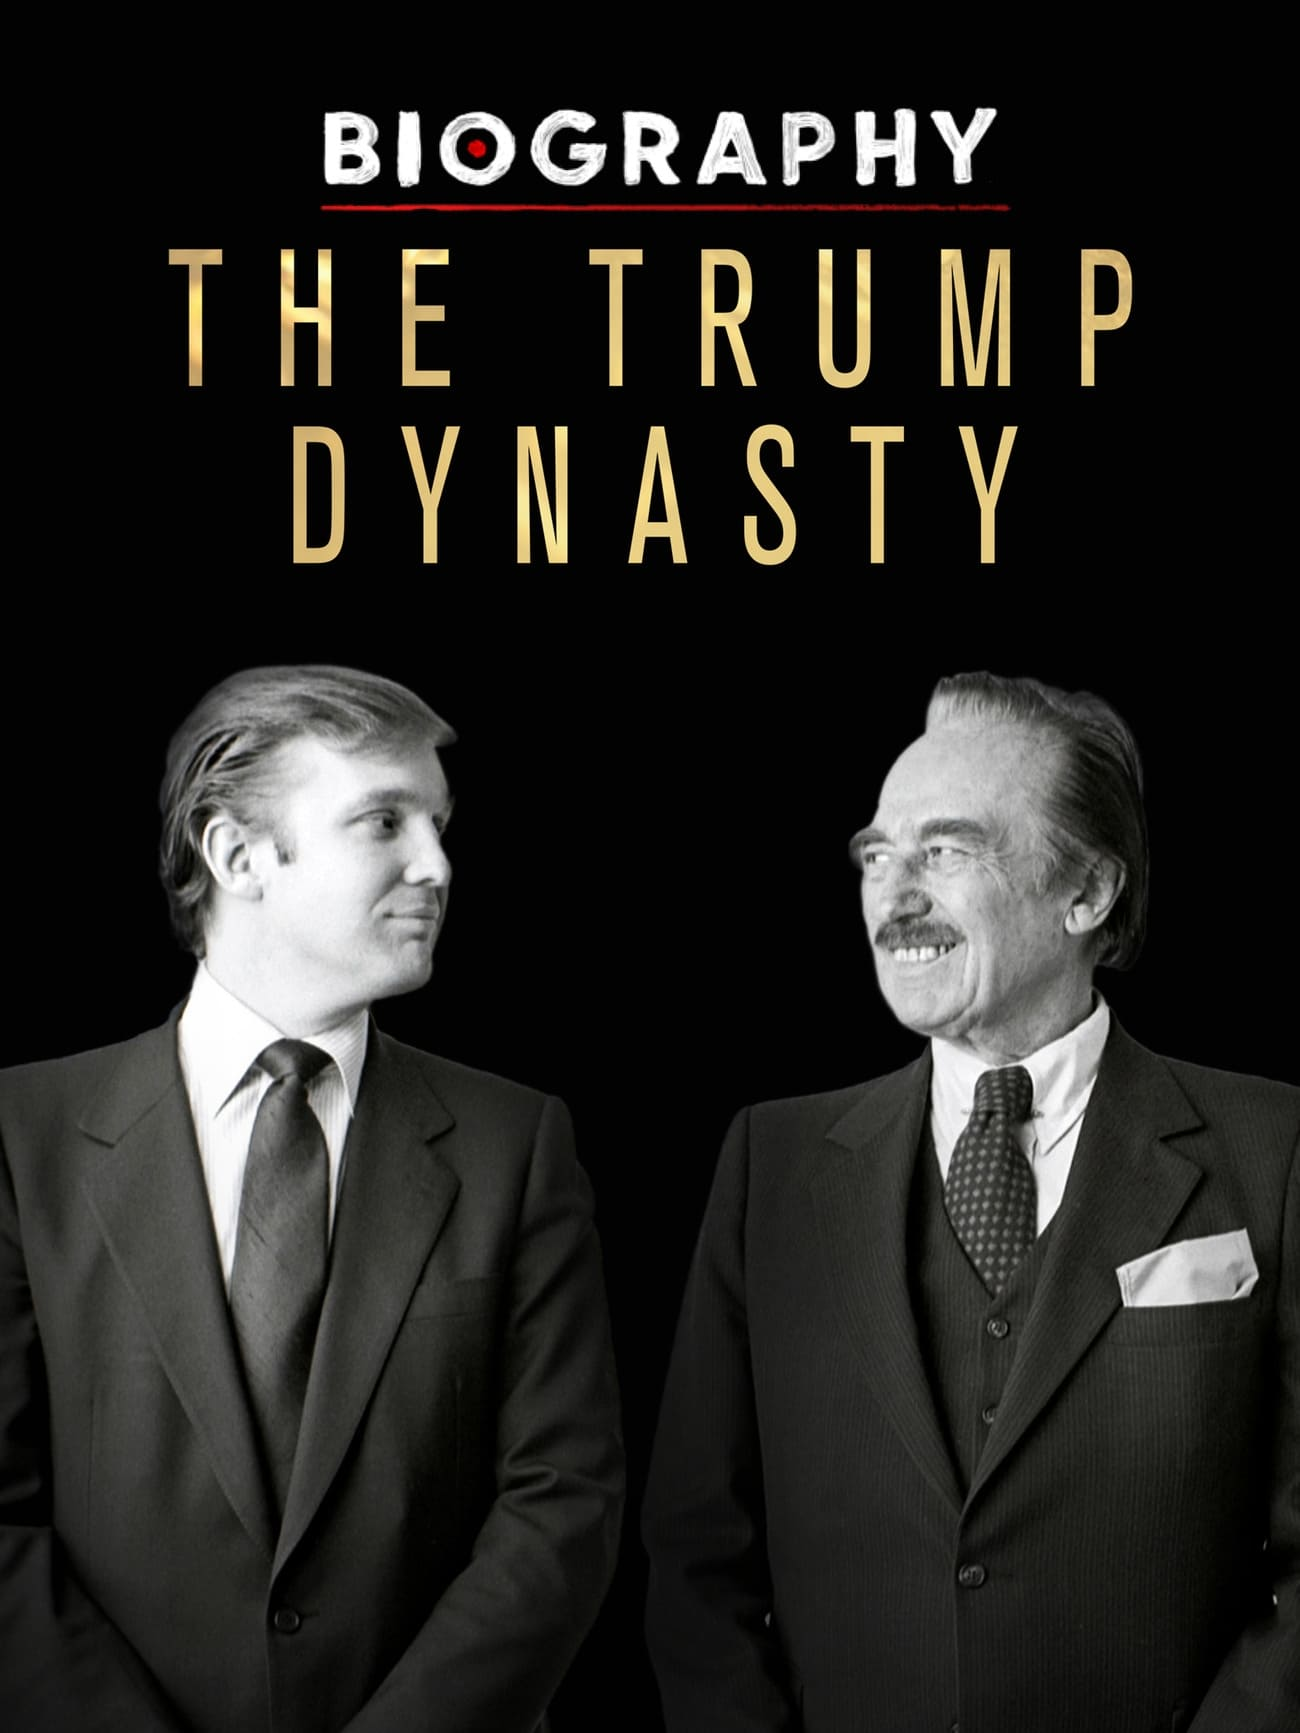 Biography: The Trump Dynasty